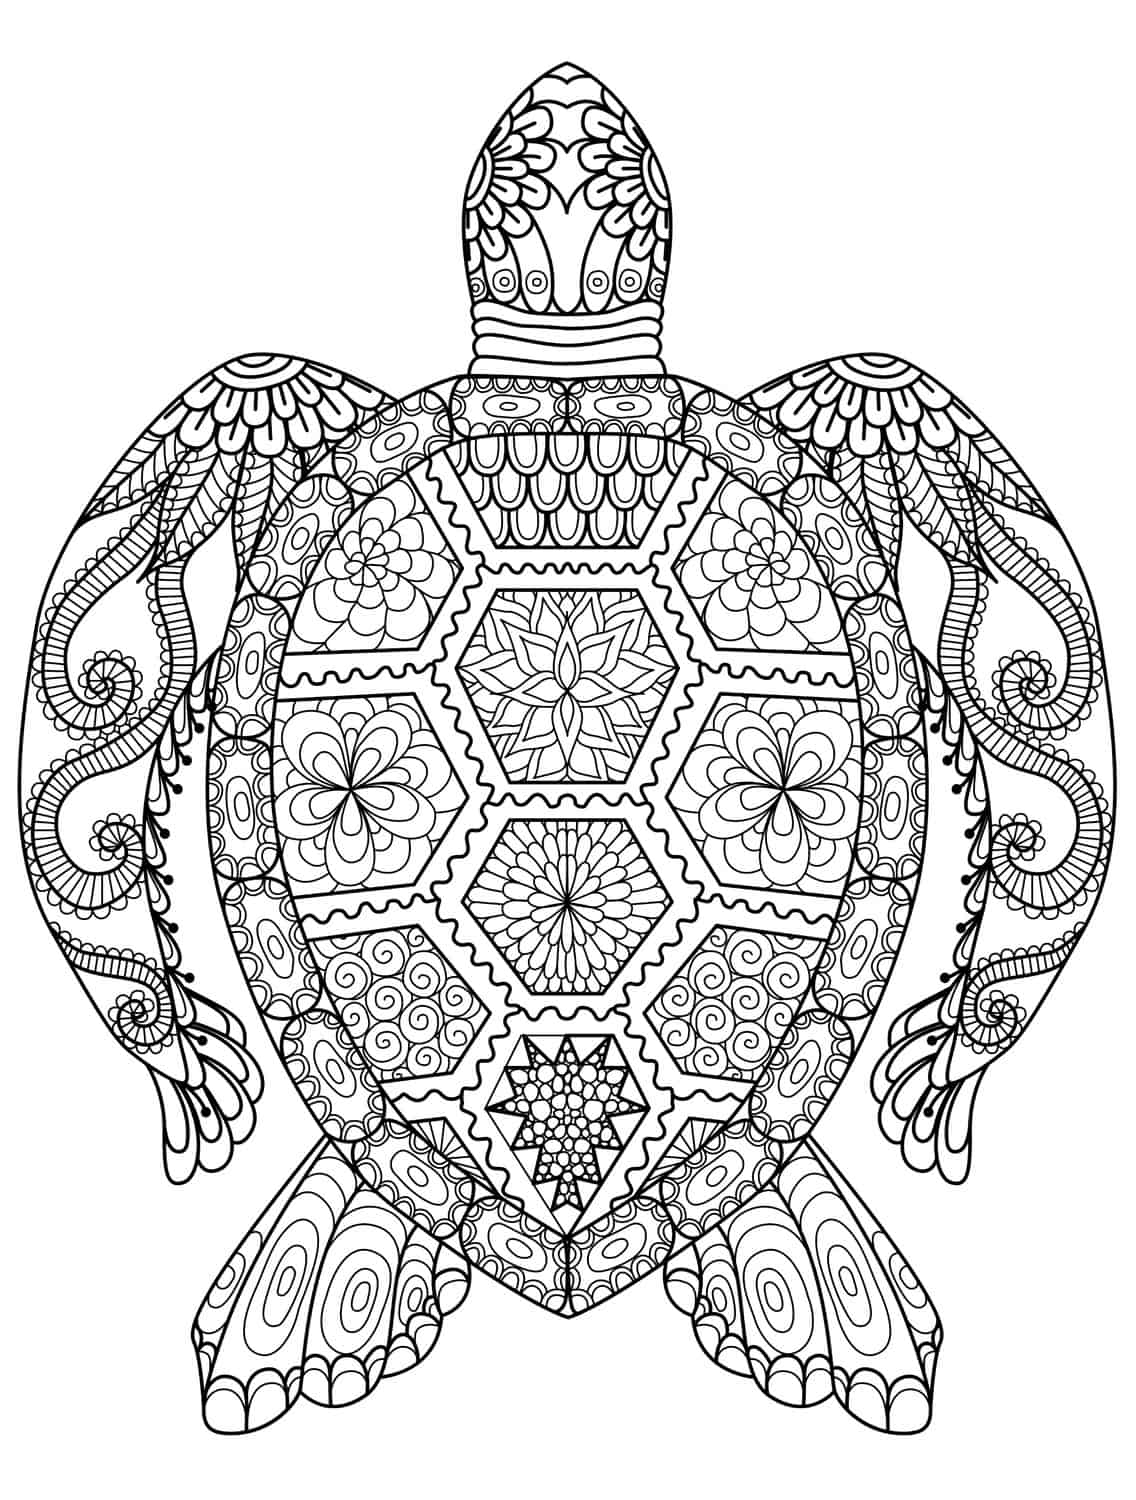 sea turtle coloring page for adults for free download - Turtle Coloring Pages For Adults